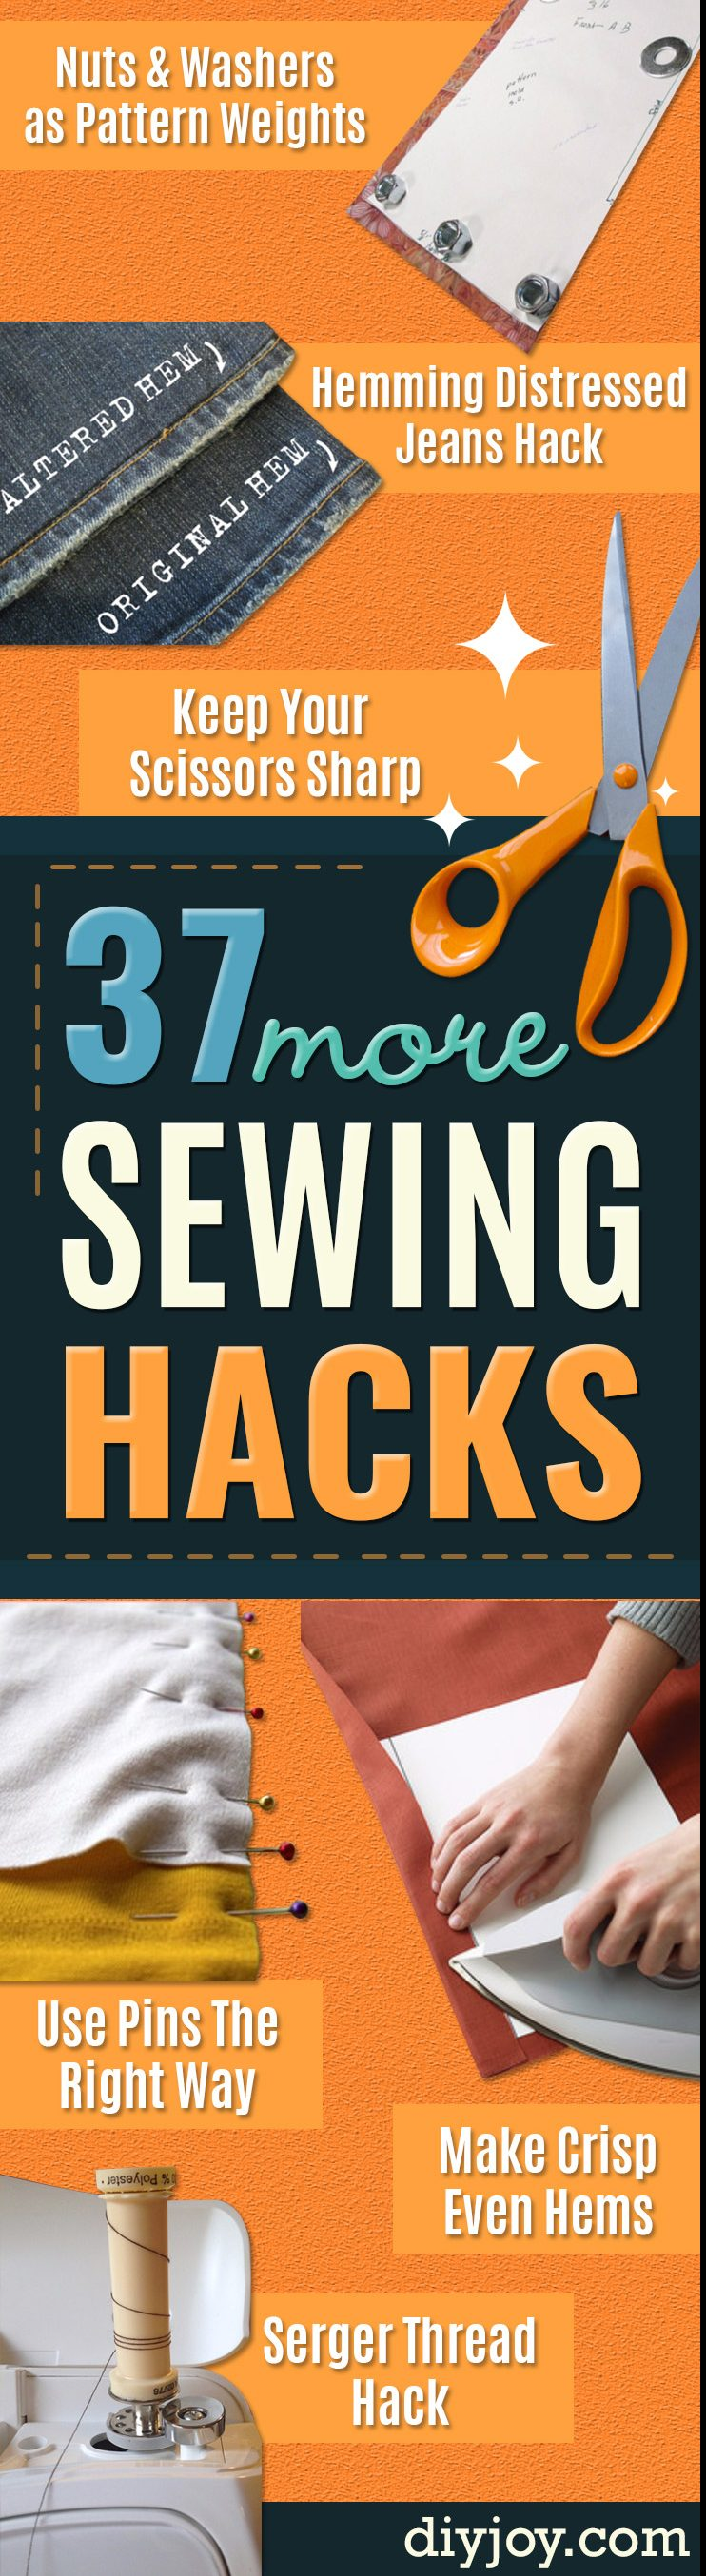 Sewing Tips and Trick - Easy Hacks for Sewing Shortcuts - Best Tips and Tricks for Sewing Patterns, Projects, Machines, Hand Sewn Items. Clever Ideas for Beginners and Even Experts #sewing #hacks